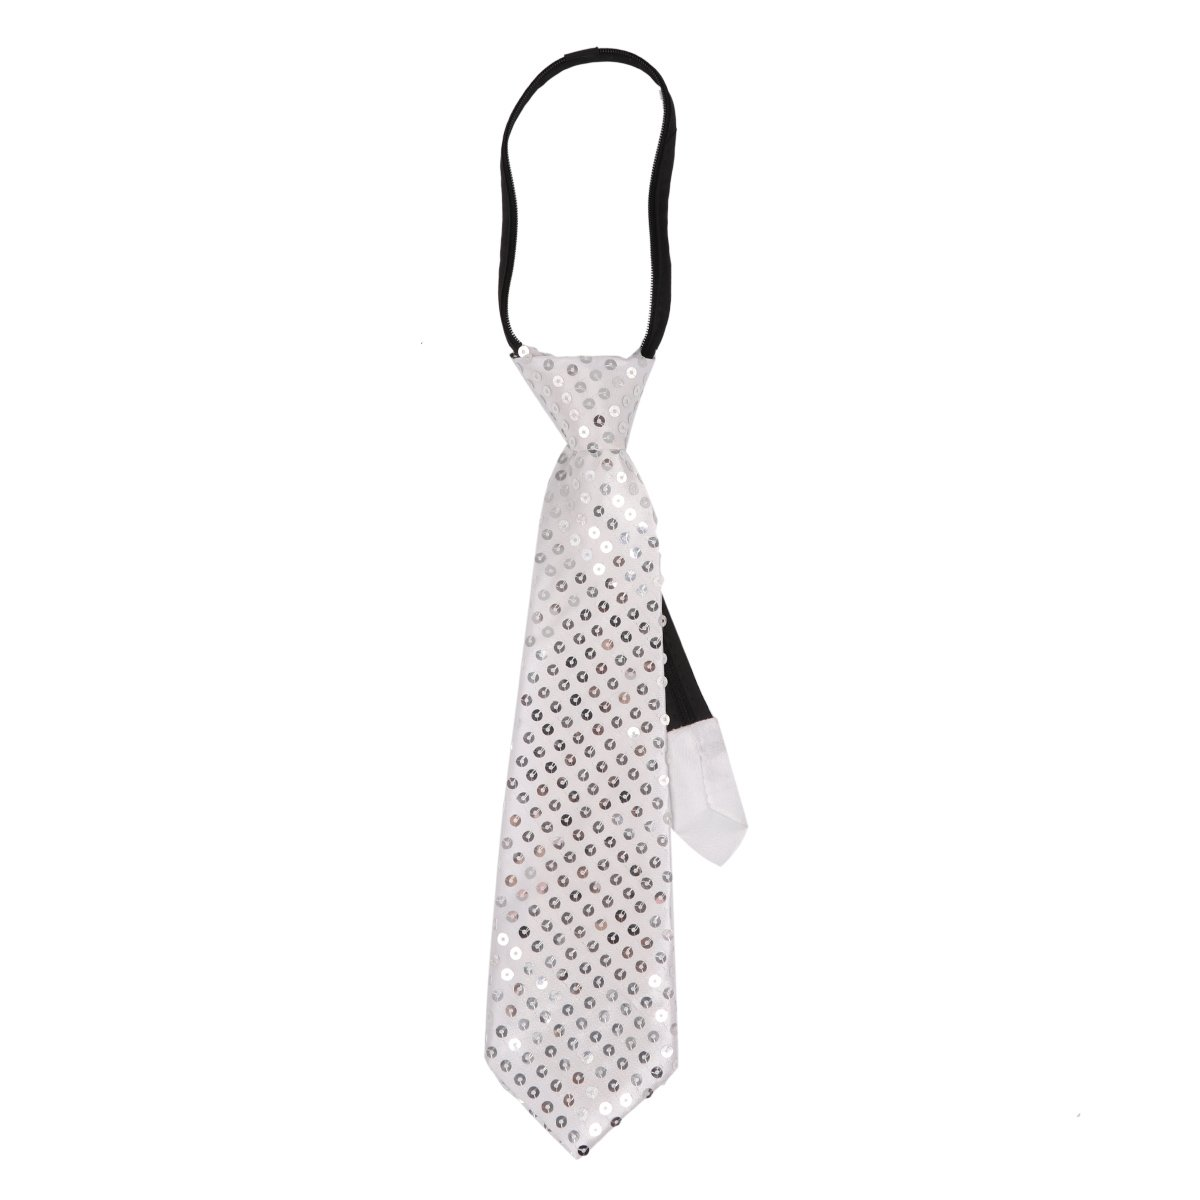 FEESHOW Sequin Pre-tied Tie Necktie with Adjustable Zipper for Party Costume Magic Show Silver One Size